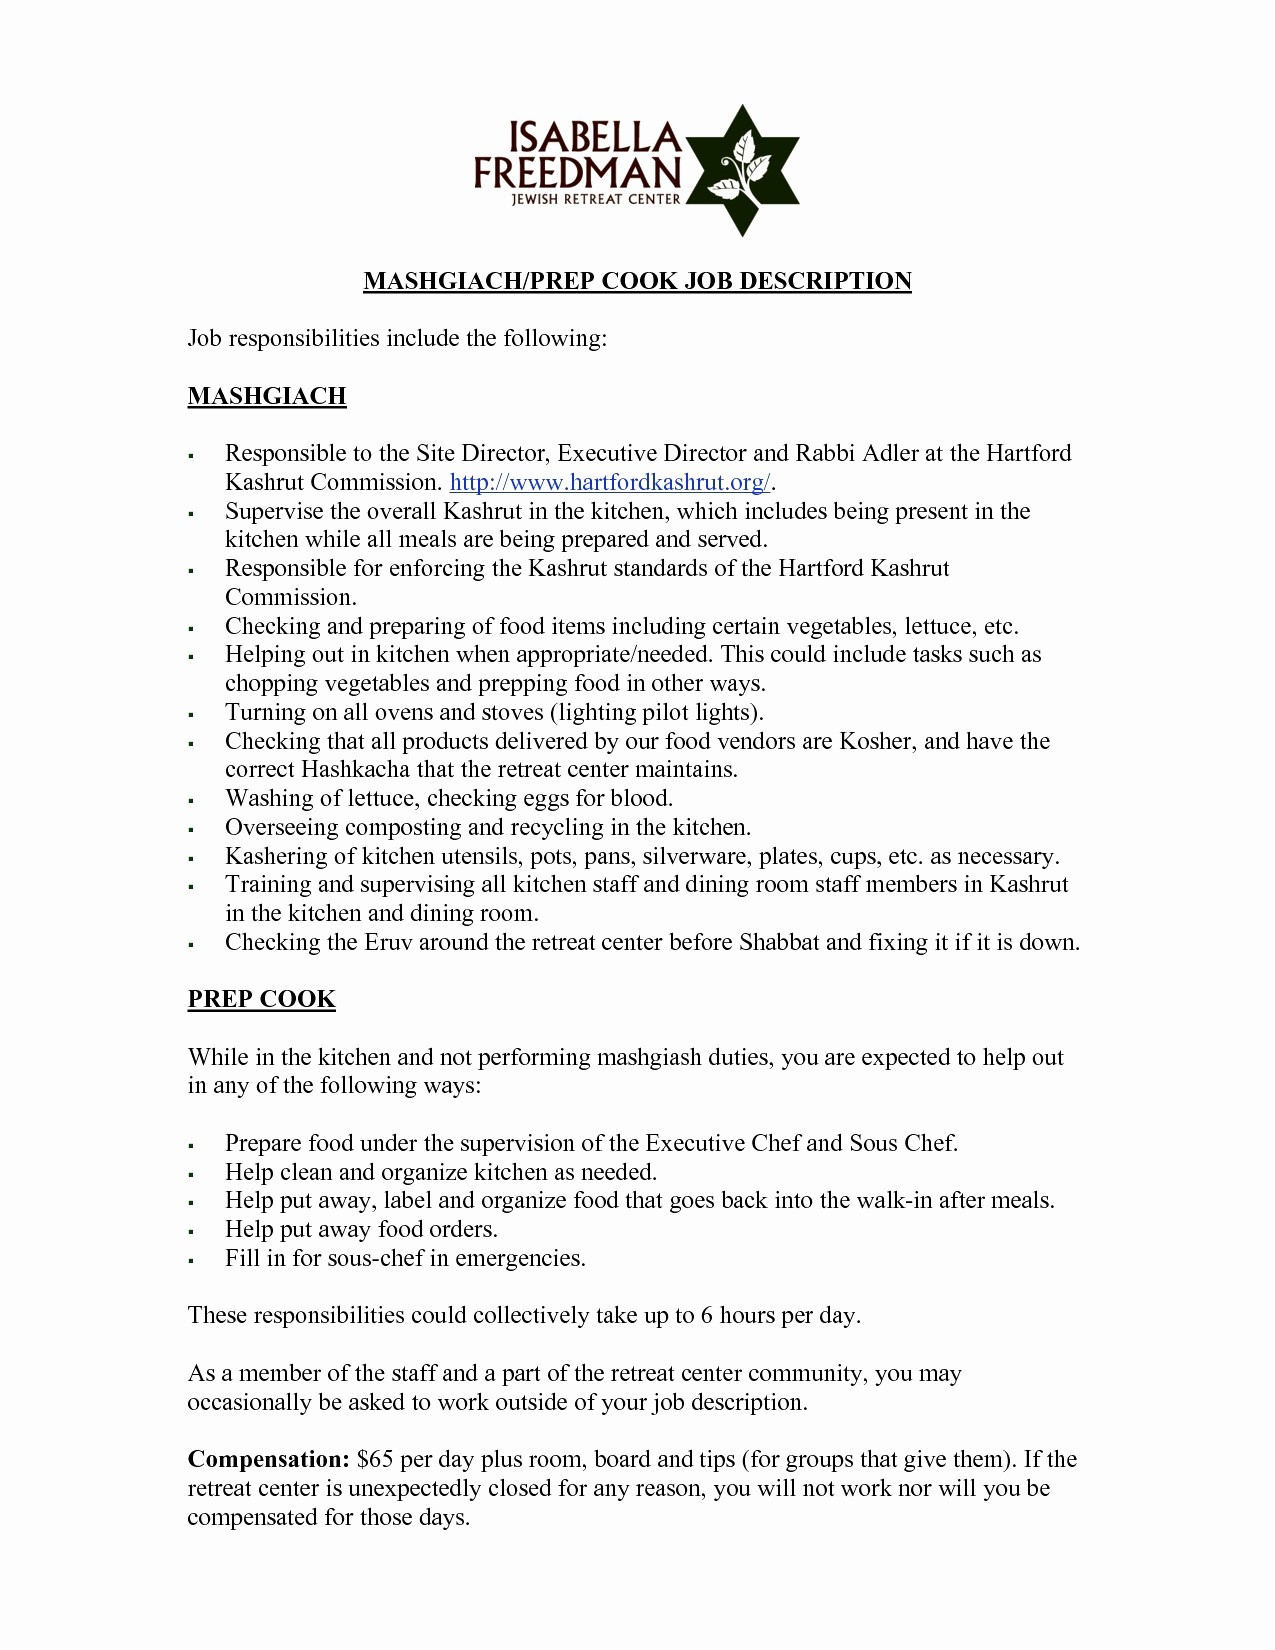 Resume Follow Up Letter Template - Cover Letter Job Sample Fresh Resume Doc Template Luxury Resume and